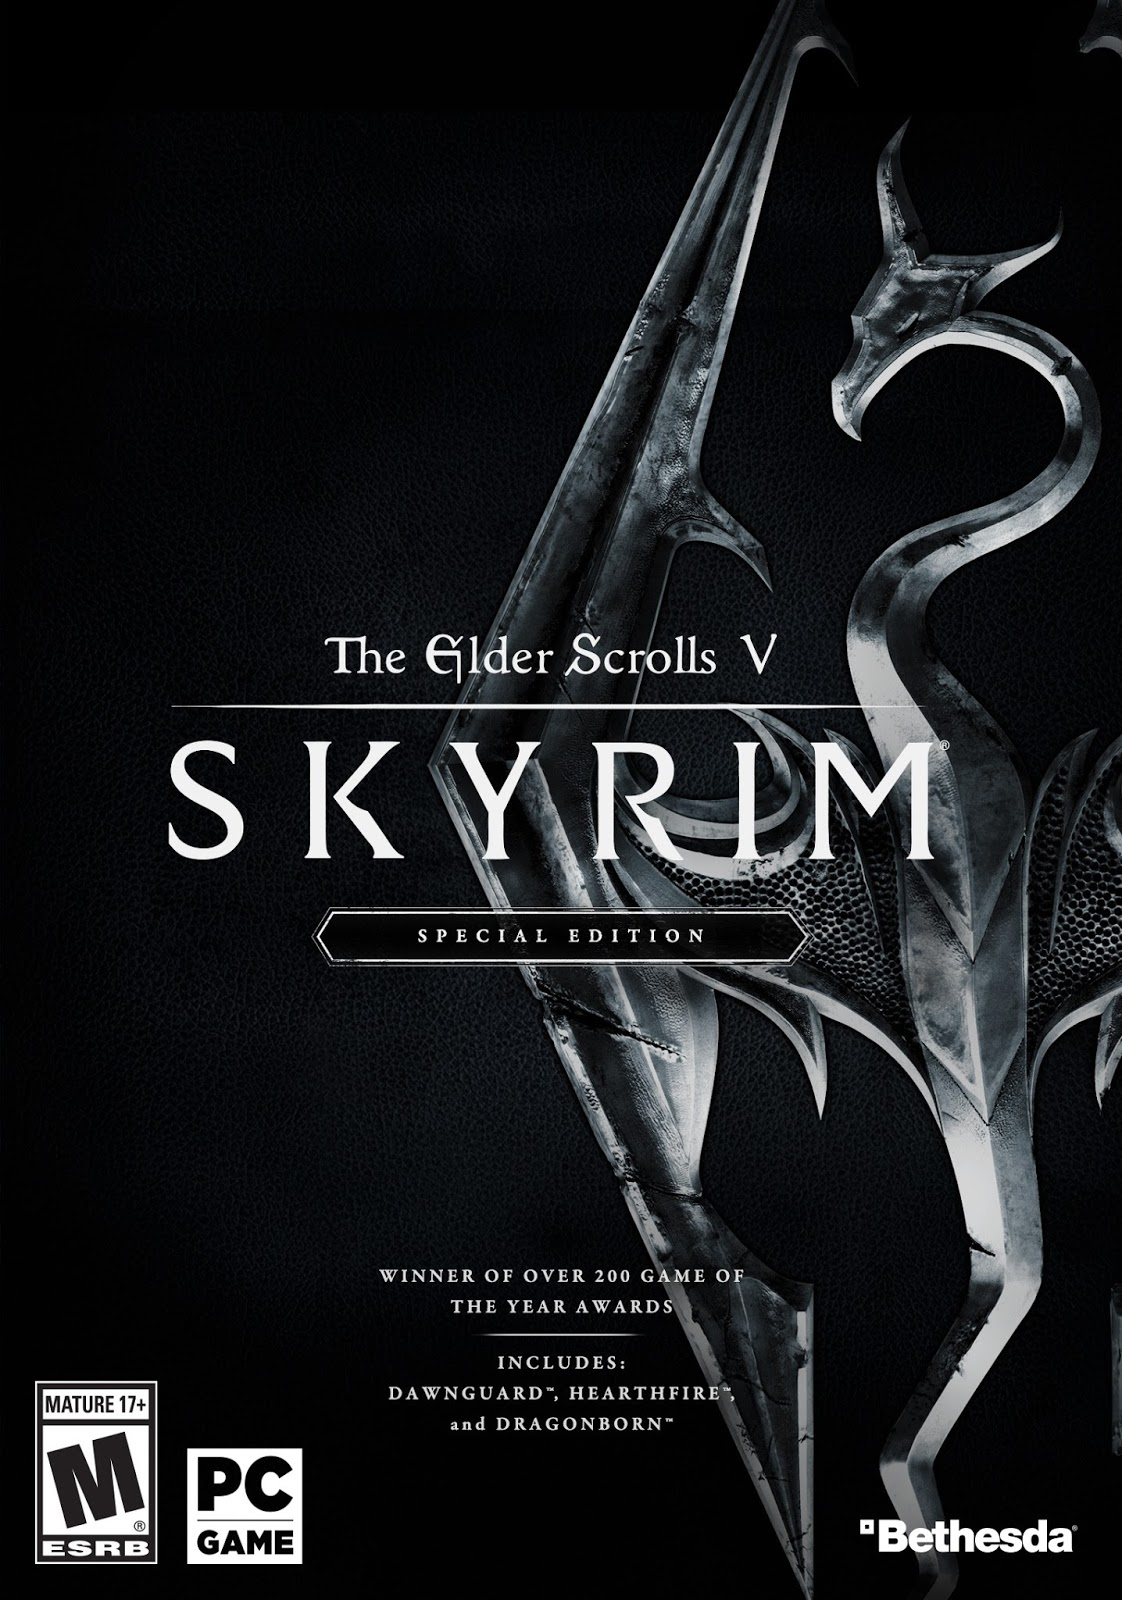 Descargar The Elder Scrolls V Skyrim Special Edition PC Cover Caraatula